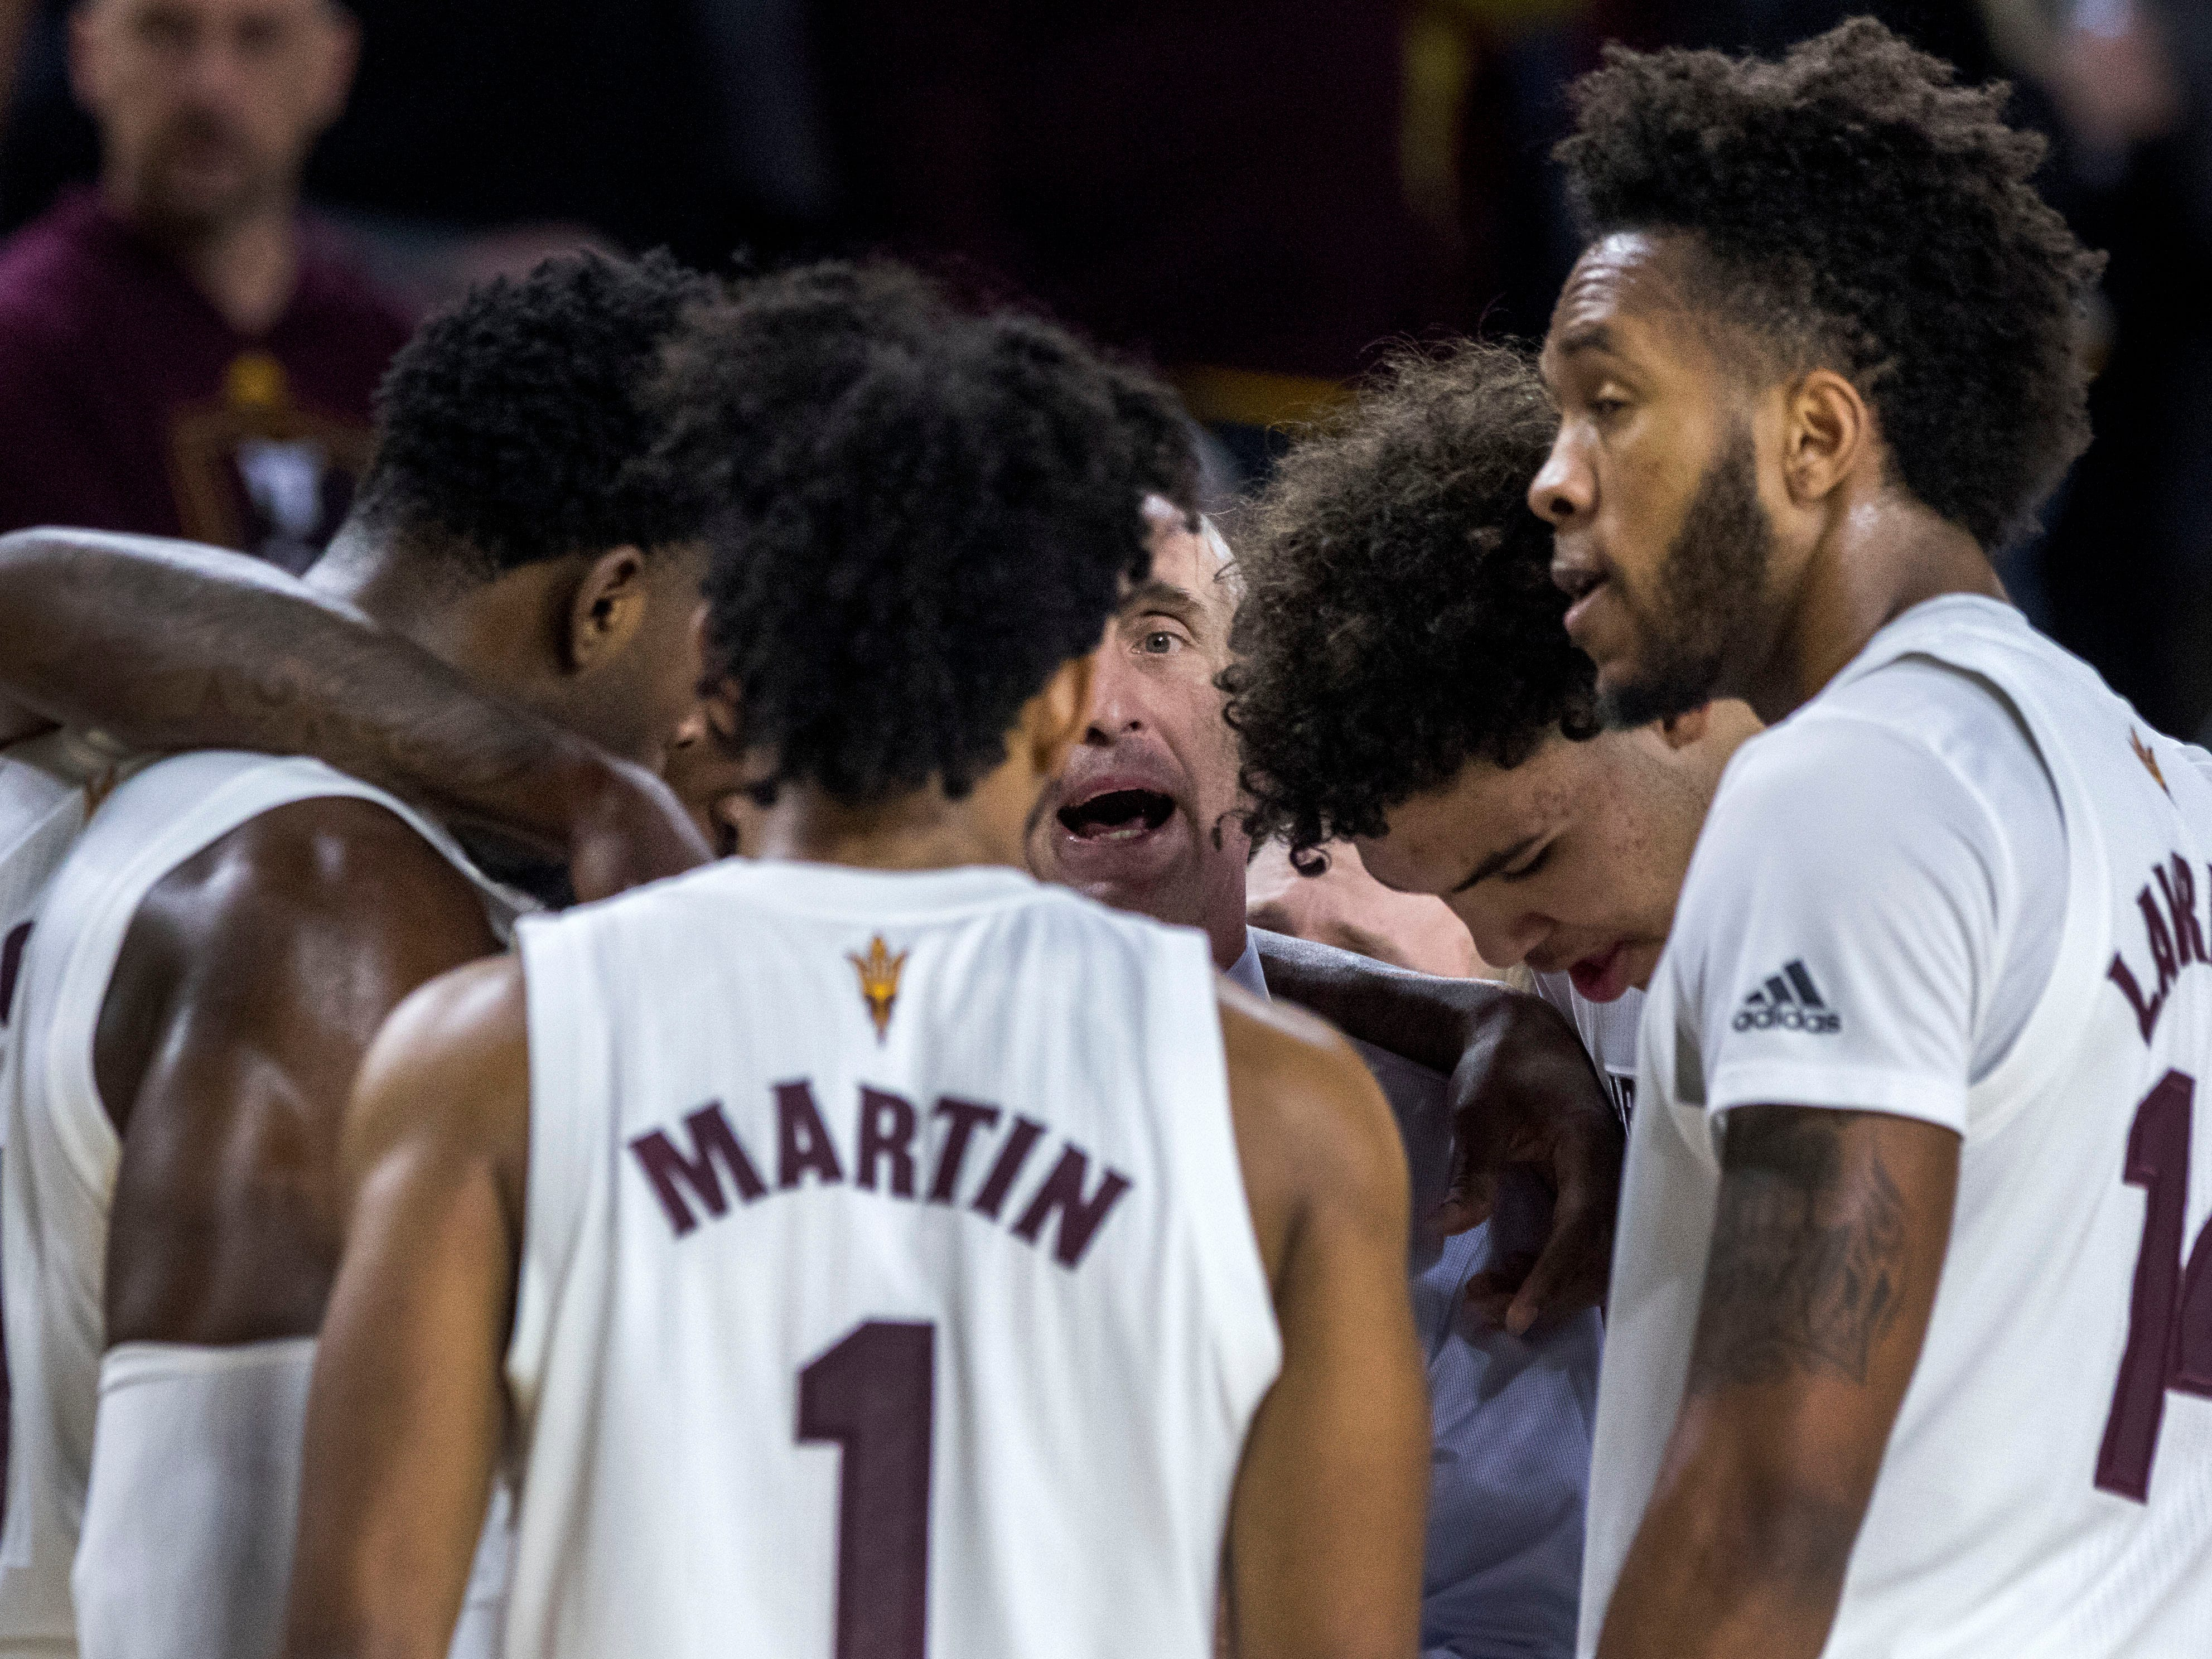 Arizona State coach Bobby Hurley huddles with his team during the second half against Oregon on Saturday, Jan. 19, 2019, in Tempe, Ariz. Arizona State won 78-64.(AP Photo/Darryl Webb)